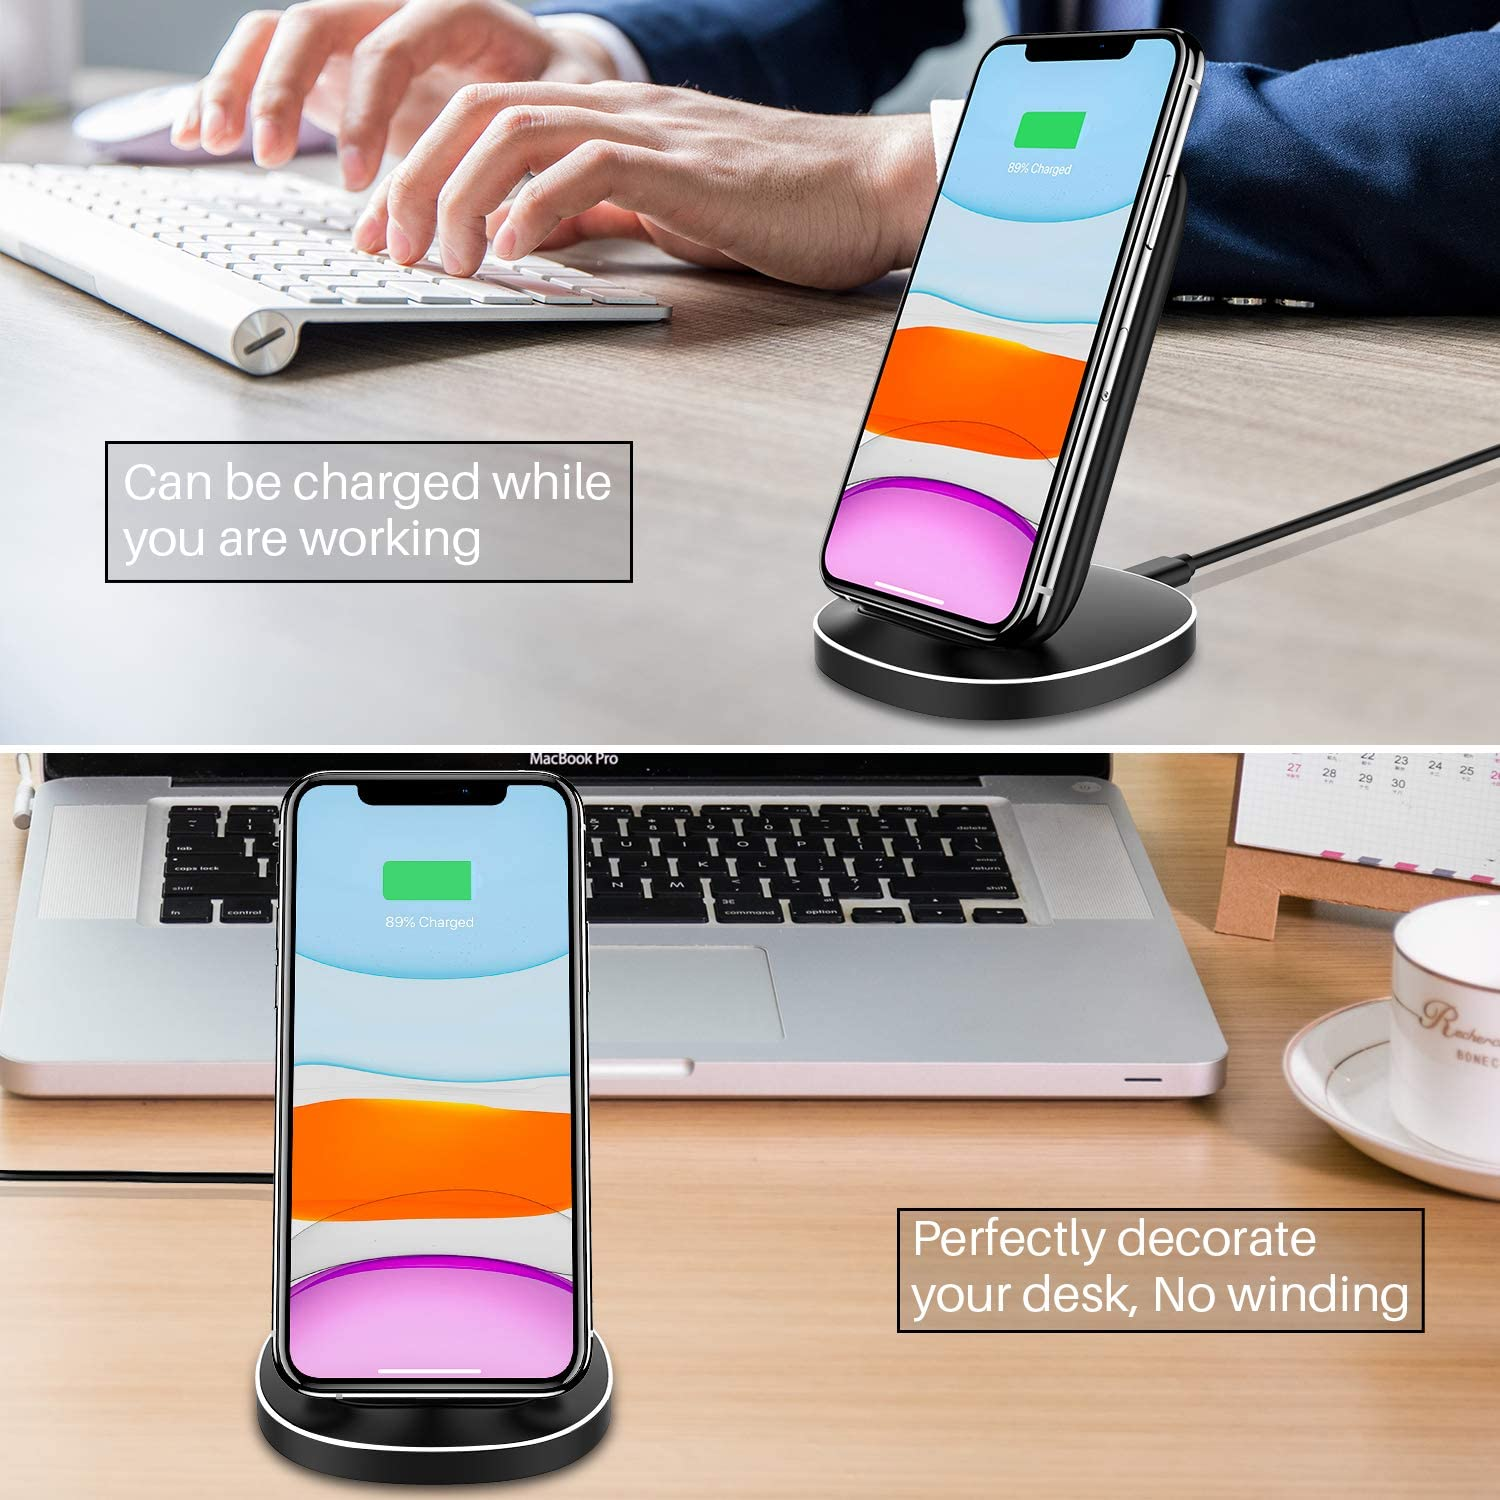 KKM Wireless Charger Google Pixel 3//4XL Huawei 15W Qi-Certified USB-C Fast Wireless Charging Stand for iPhone SE 2020//11 Pro Max Samsung Galaxy S20// S9 Plus//S10 OnePlus and More QI Enable Phones